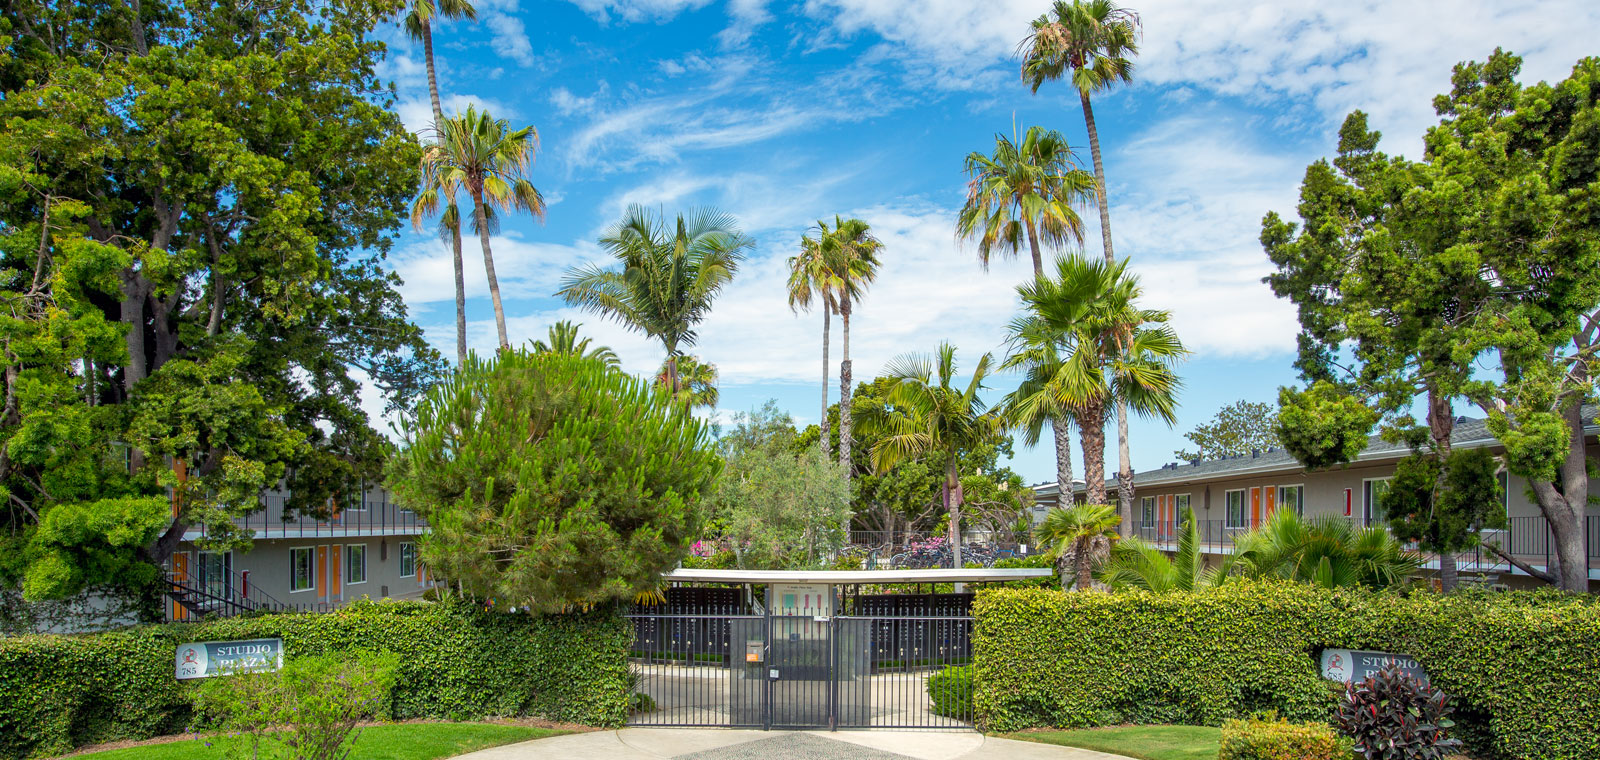 Ucsb Off Campus Apartments For Students And Visiting Faculty